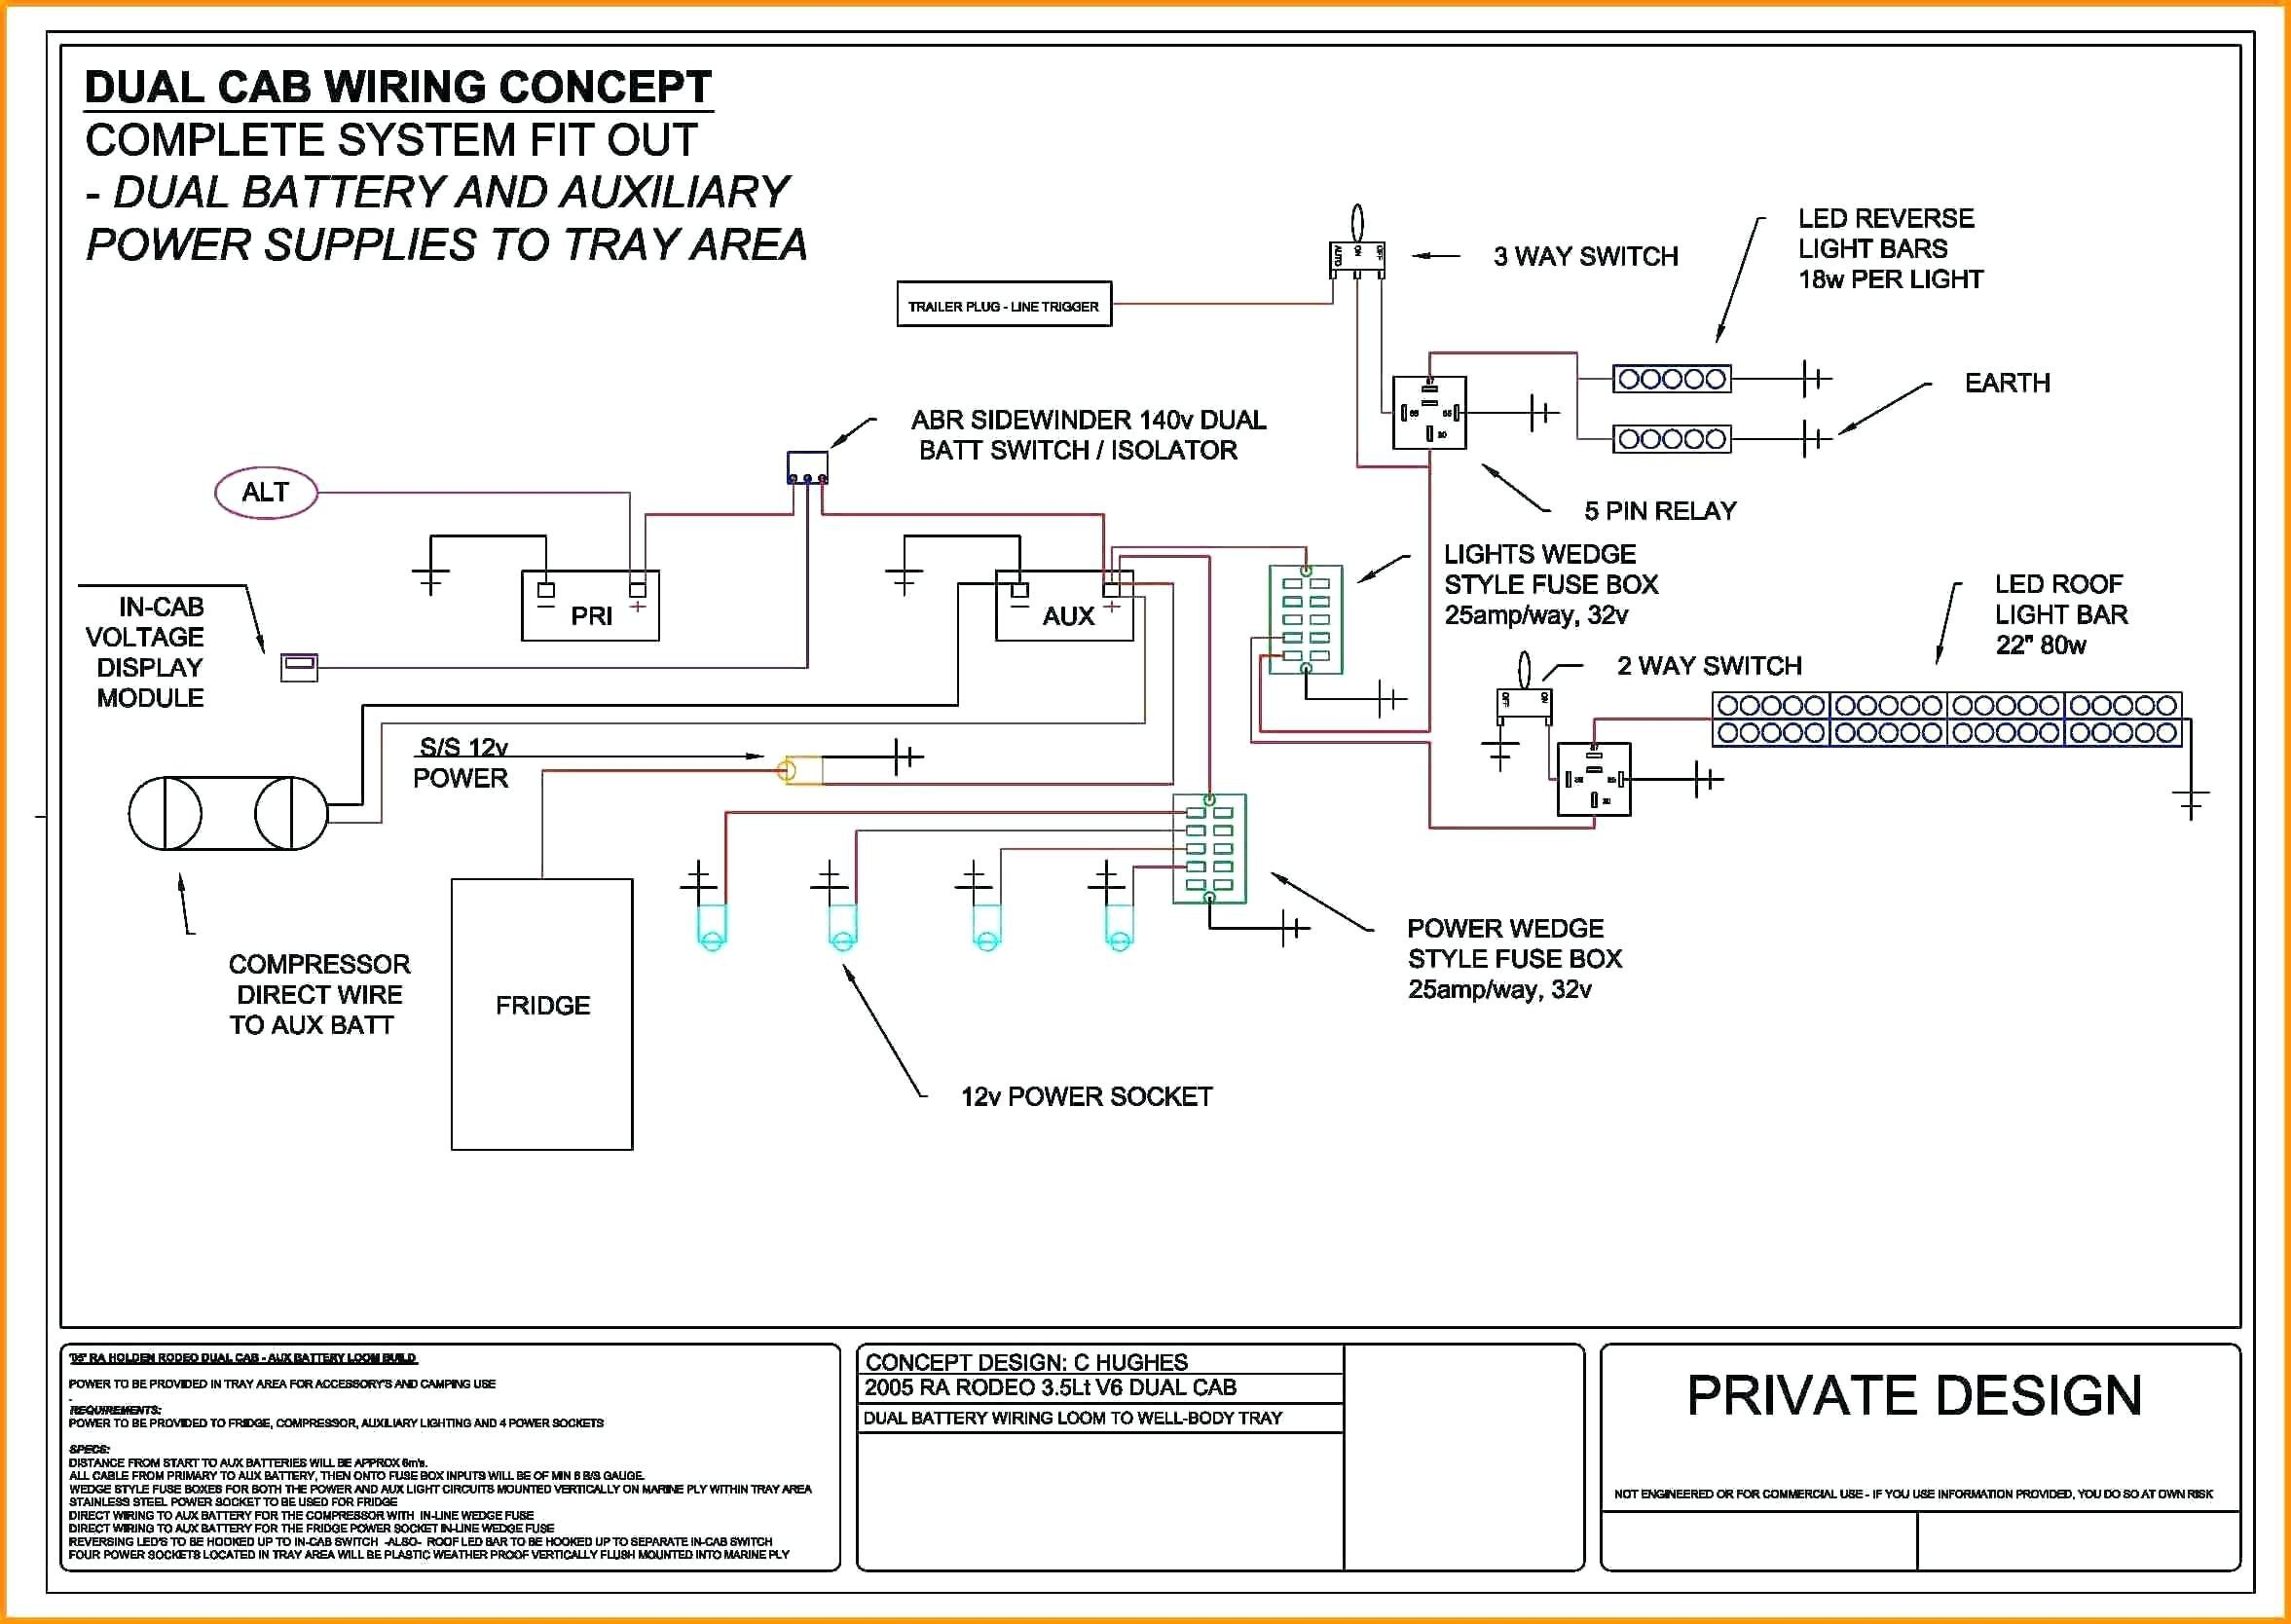 3 Prong Outlet Wiring Diagram Inspirational Image Plug Wire Stove Lovely New